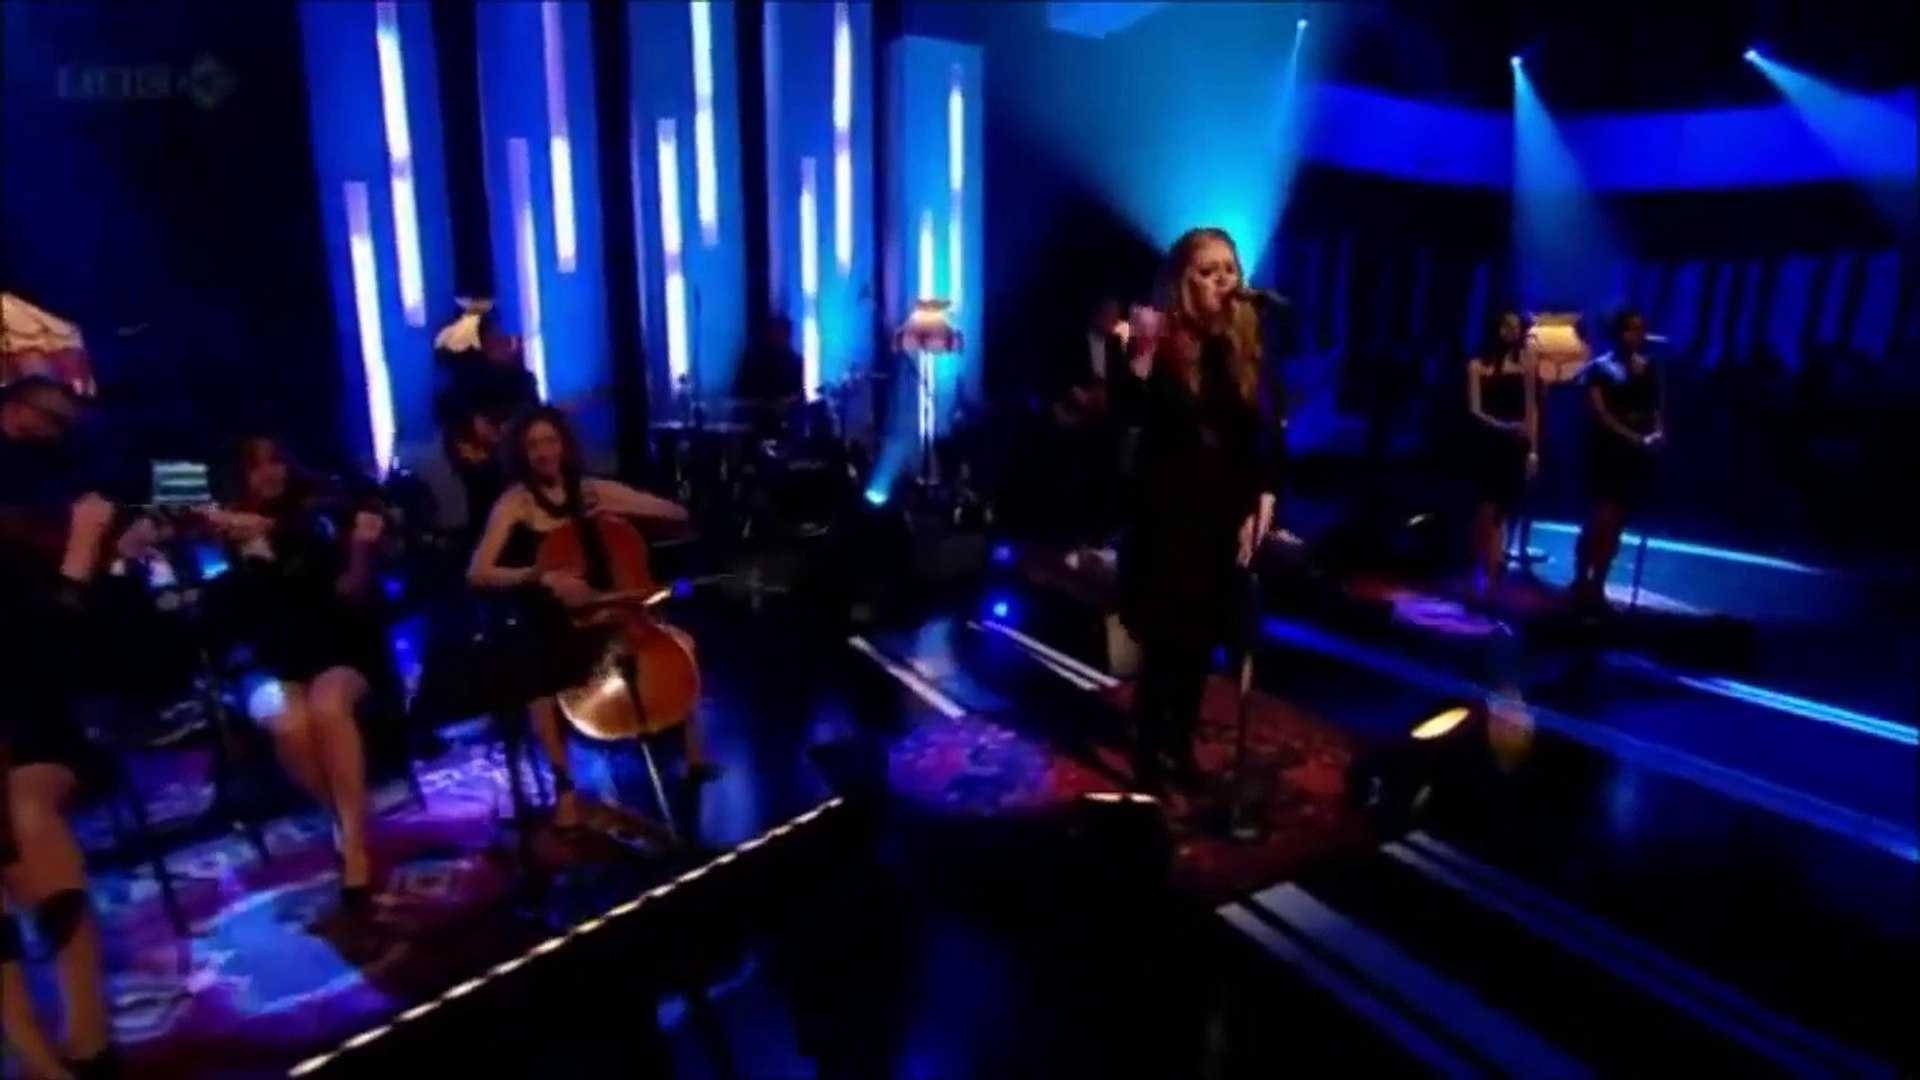 Adele - Set Fire To The Rain (vocals only) - Wow!